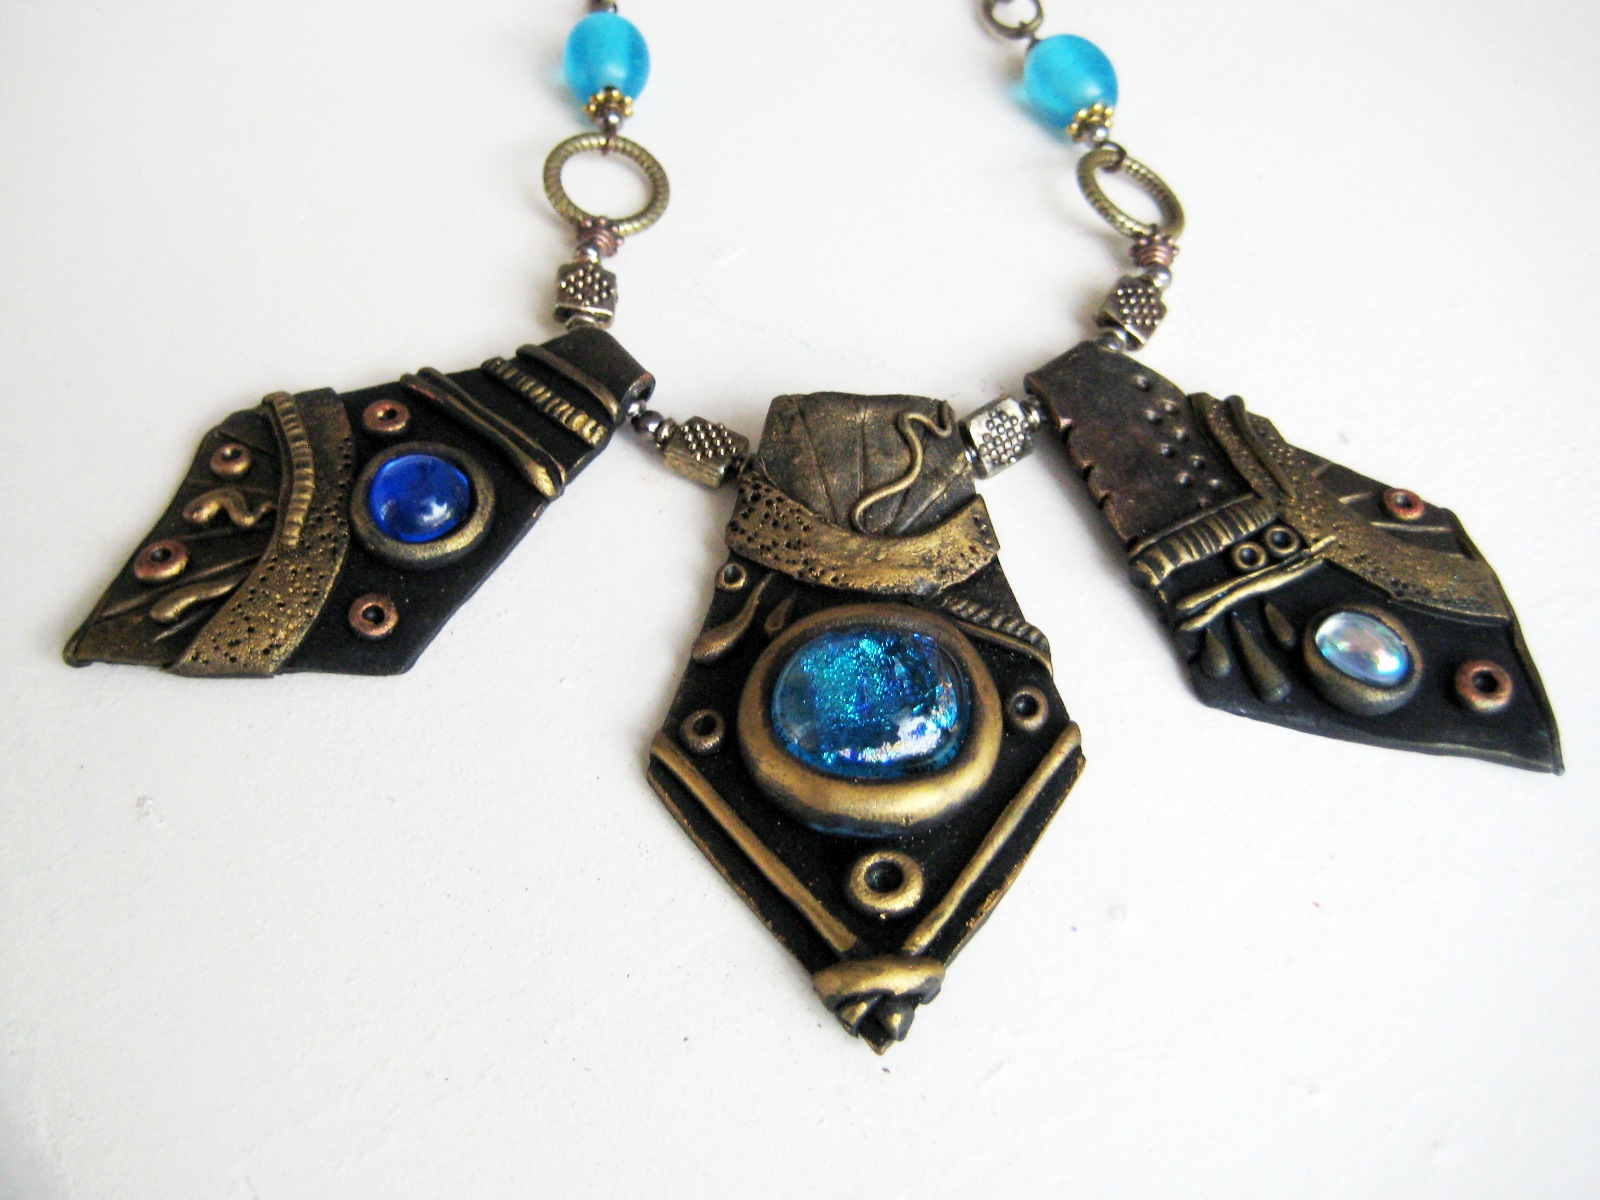 Blue Stone and Gold Polymer Clay Necklace by RoyalKitness on DeviantArt